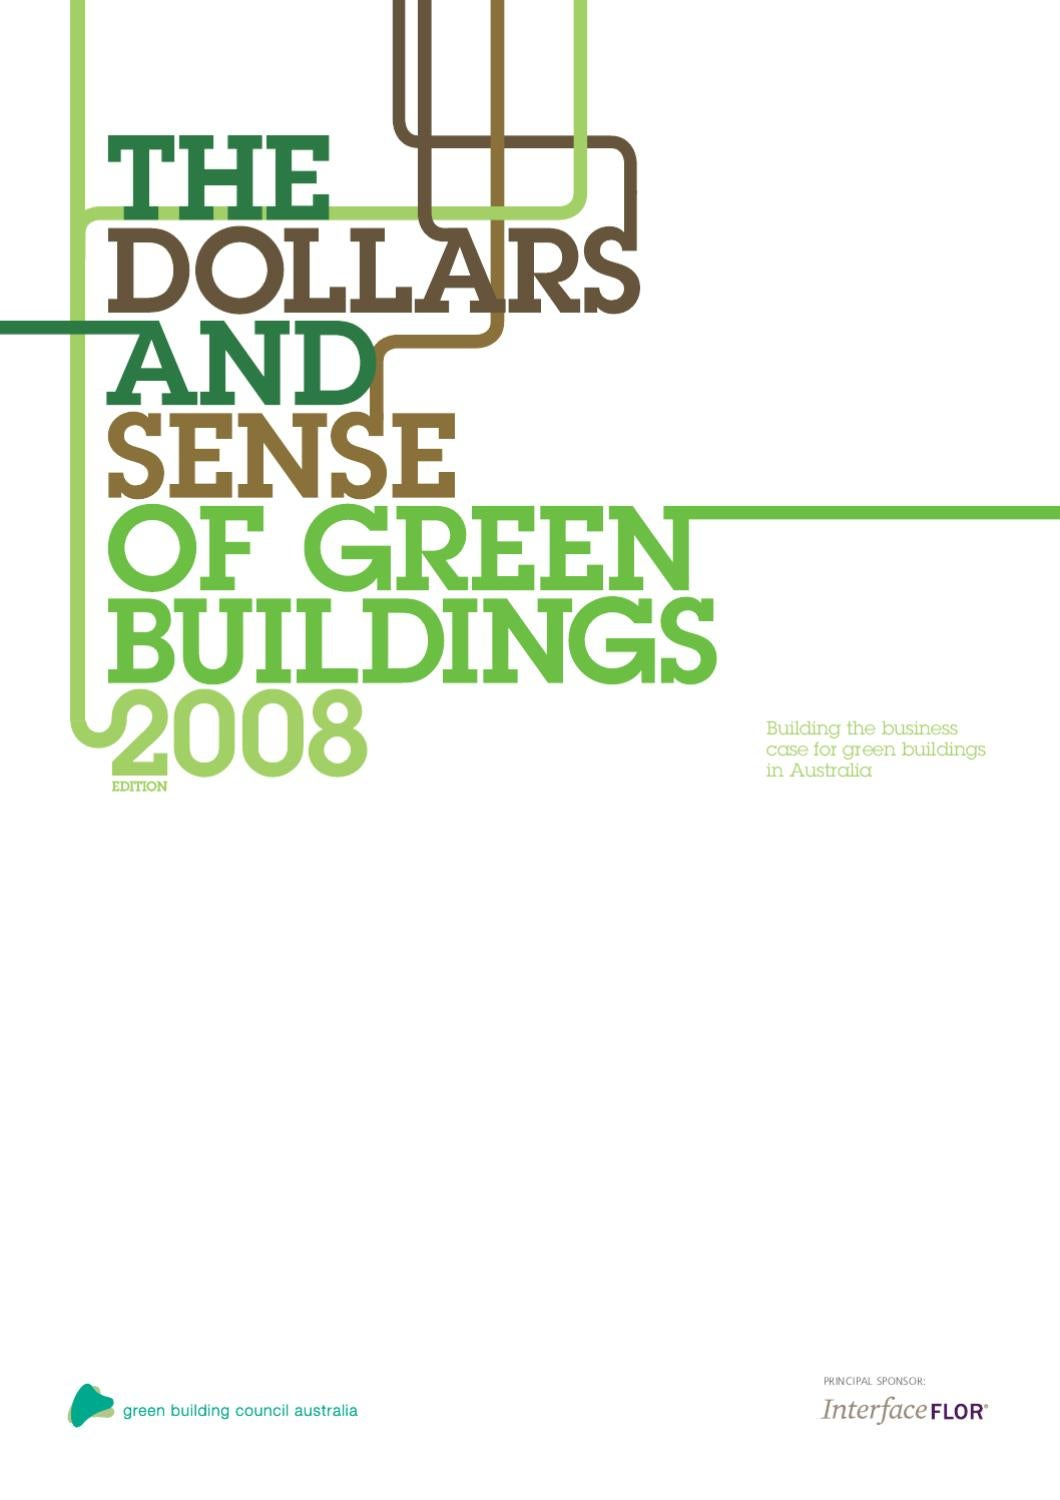 The Dollars And Sense Of Green Building 2008 Edition By Daf 105 Electrical Wiring Diagram Auto Repair Manual Forum Heavy Council Australia Issuu